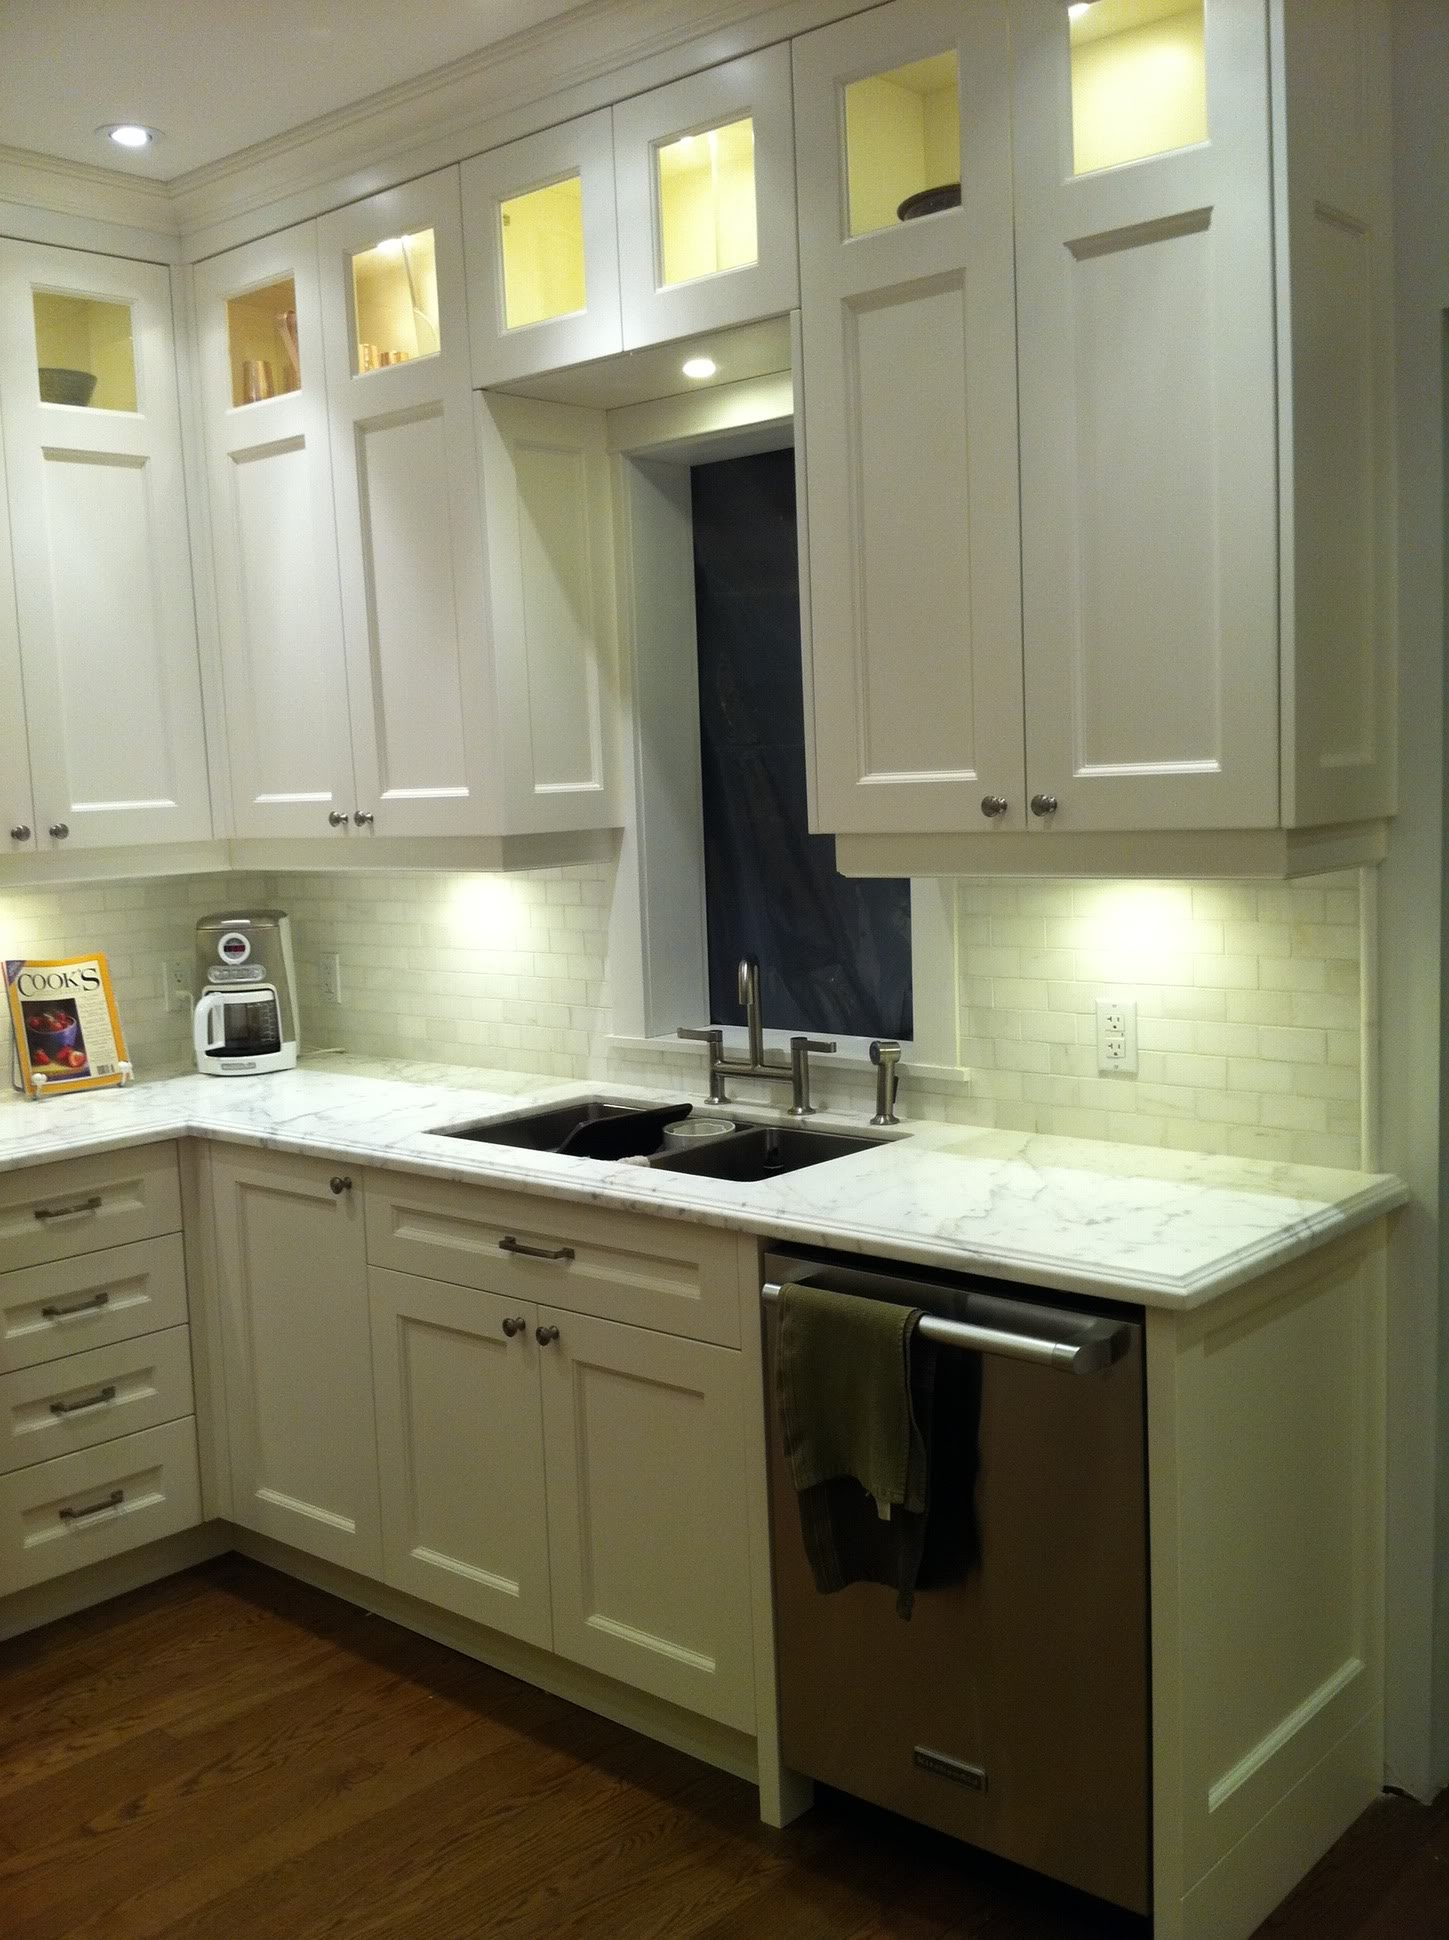 Finishing Kitchen Cabinets To Ceiling1449 X 1940